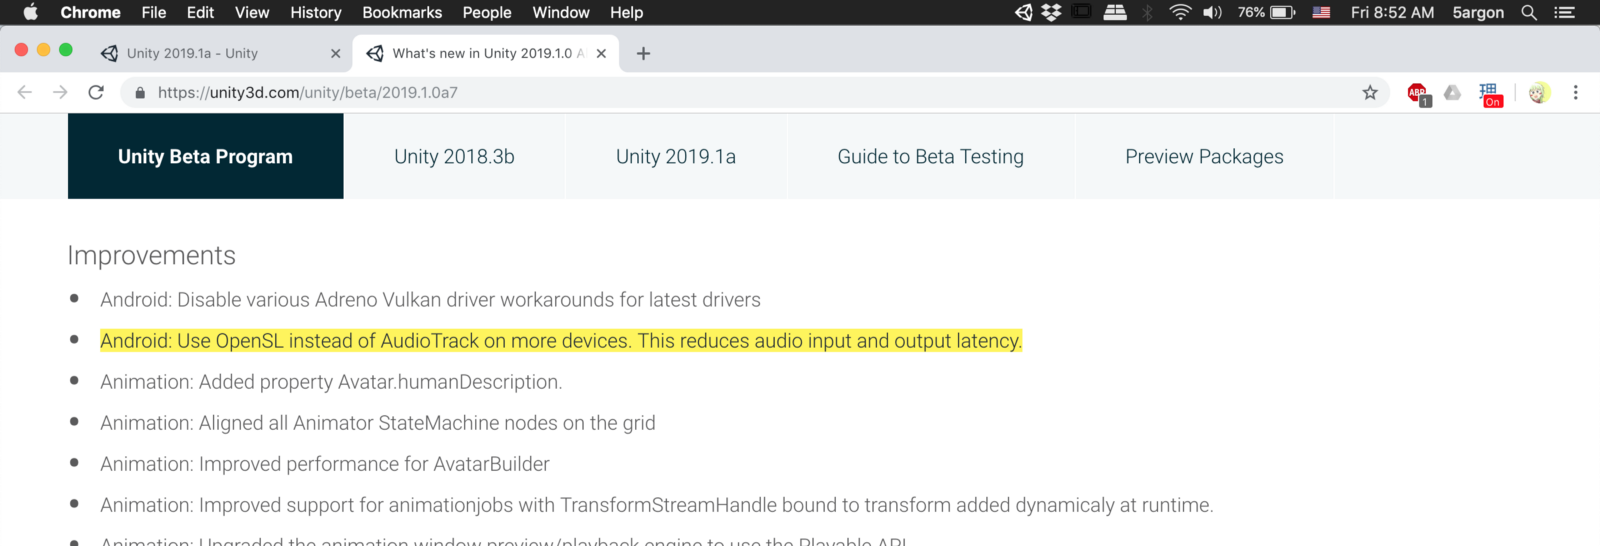 Unity's Android audio latency improvement in 2019 1 0